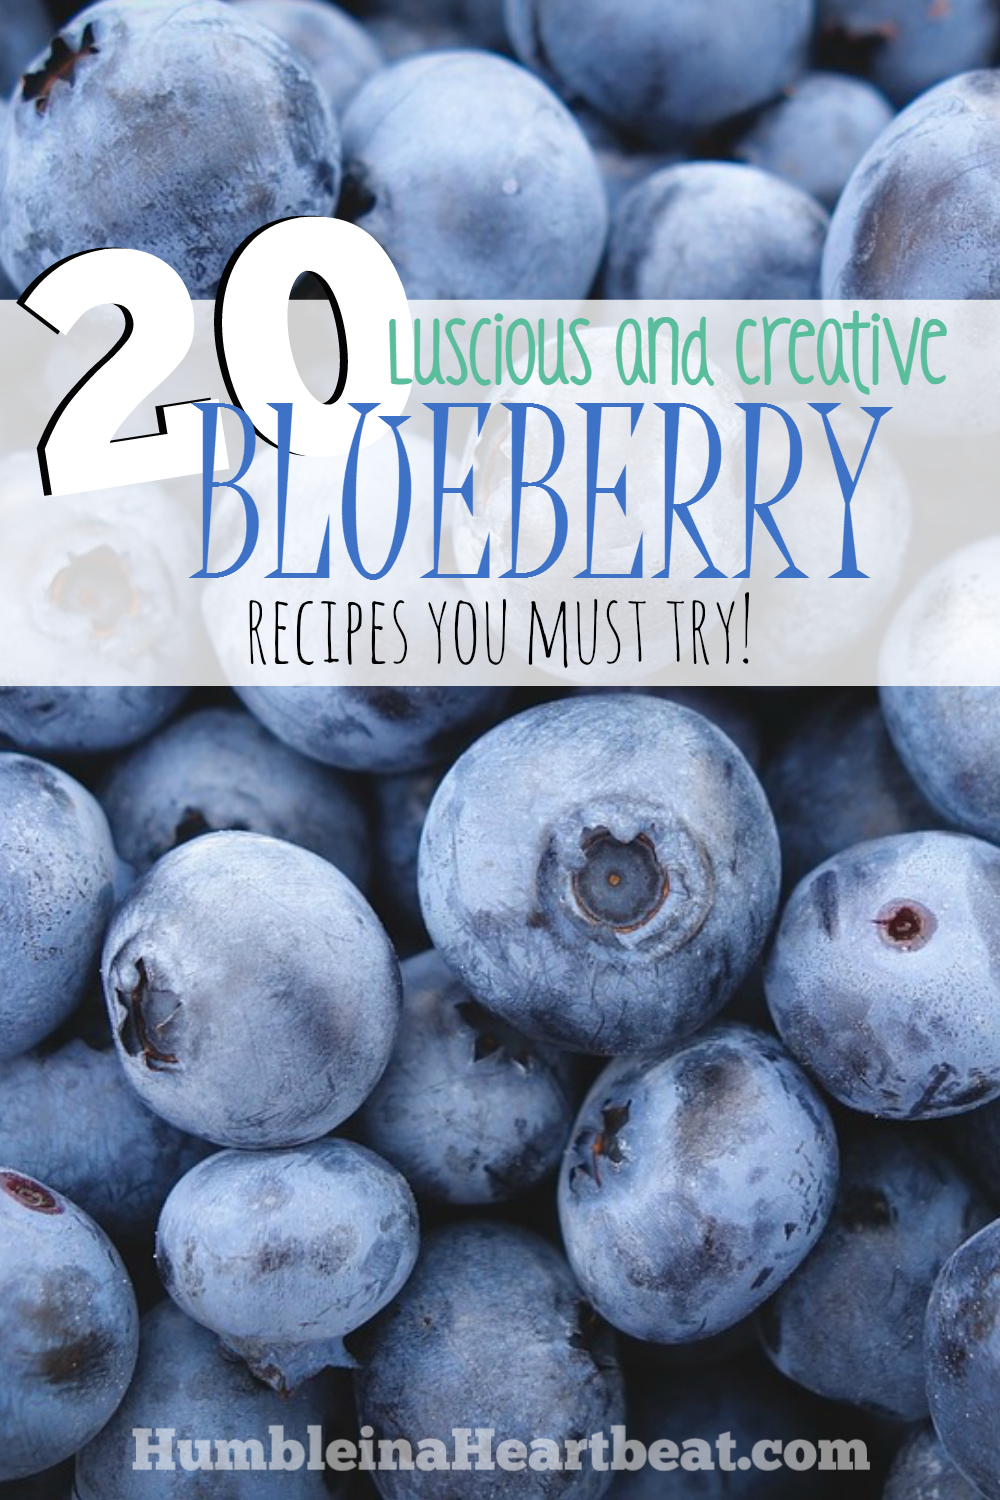 This is an awesome list of 20 recipes containing blueberries! Pinned for when I need ideas to use up blueberries!